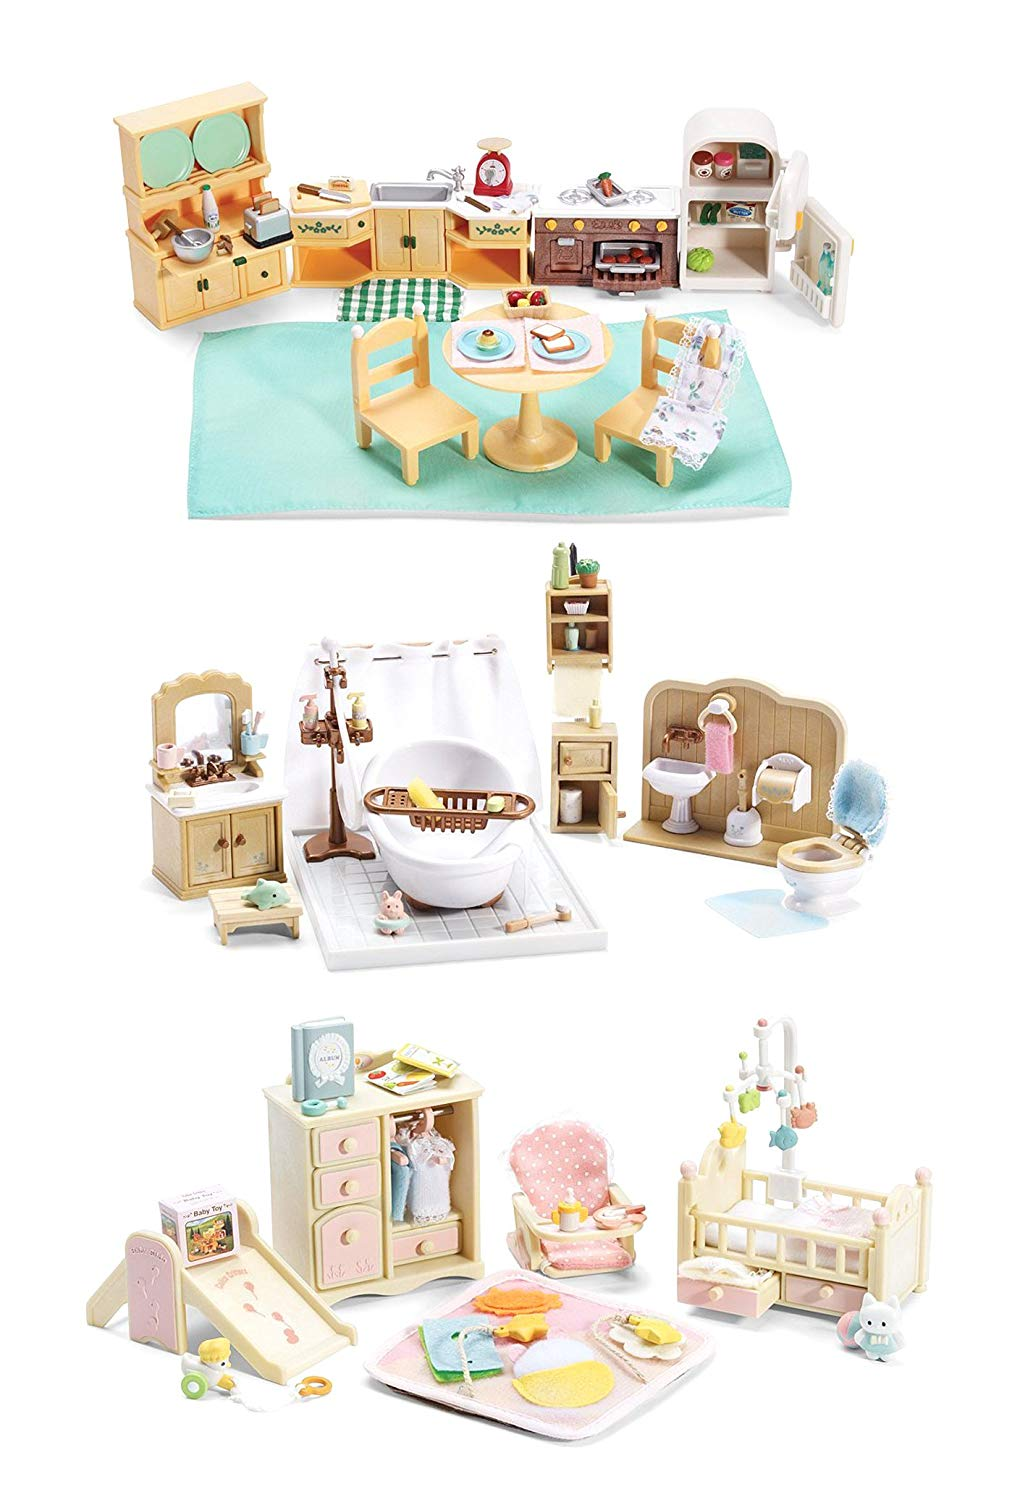 Calico Critters of Cloverleaf Corners Furniture Bundle – Deluxe Bathroom Set with Baby's Nursery Set and Kozy Kitchen Set – Build Skills with Imaginative Play